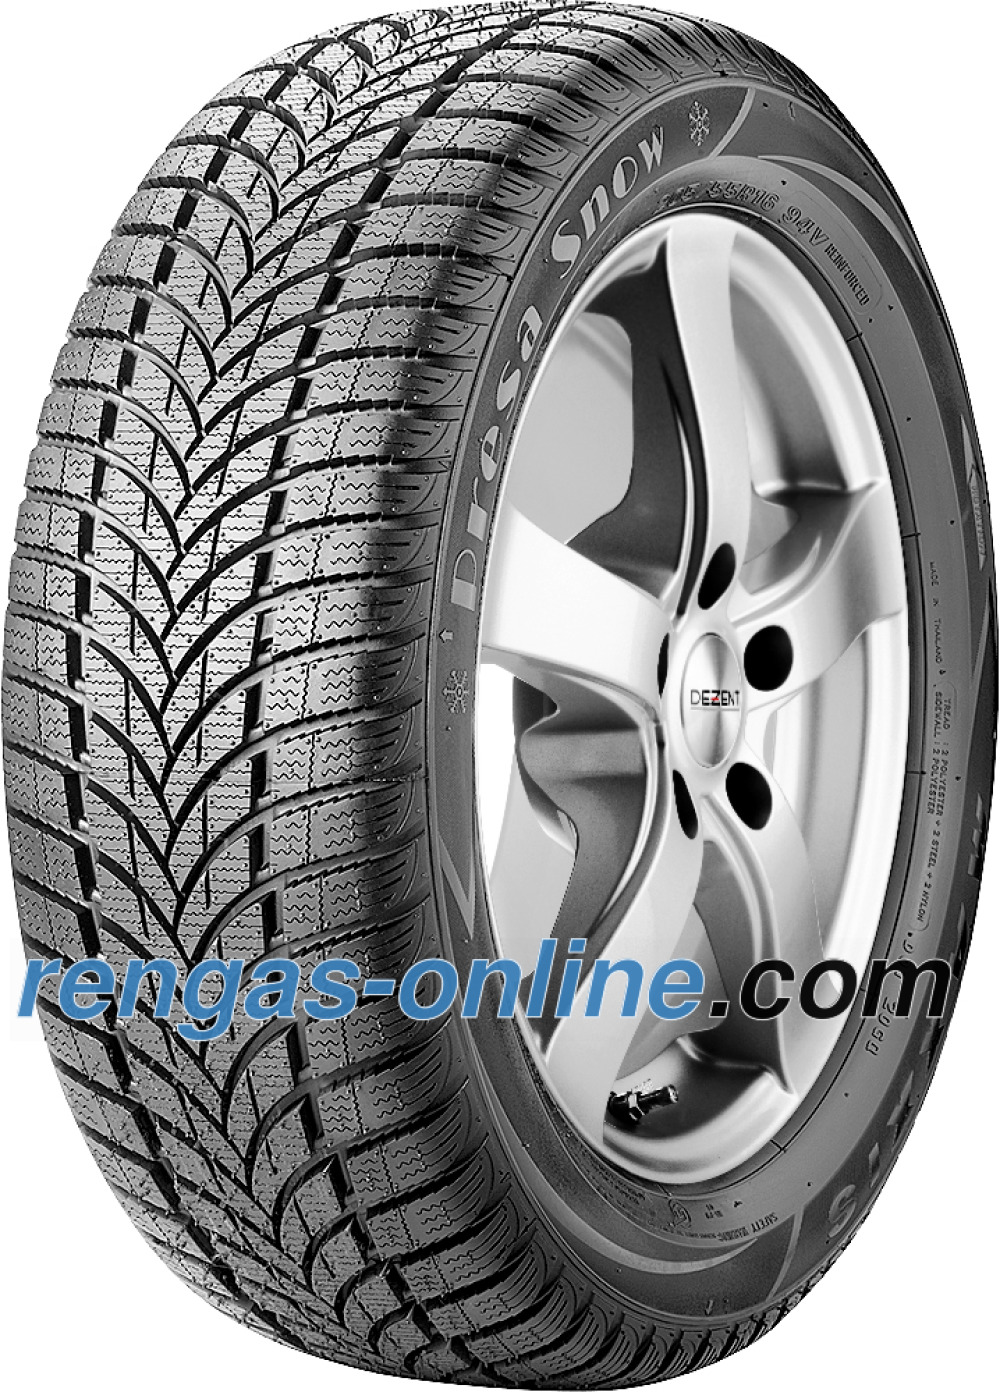 maxxis-ma-pw-15565-r13-73t